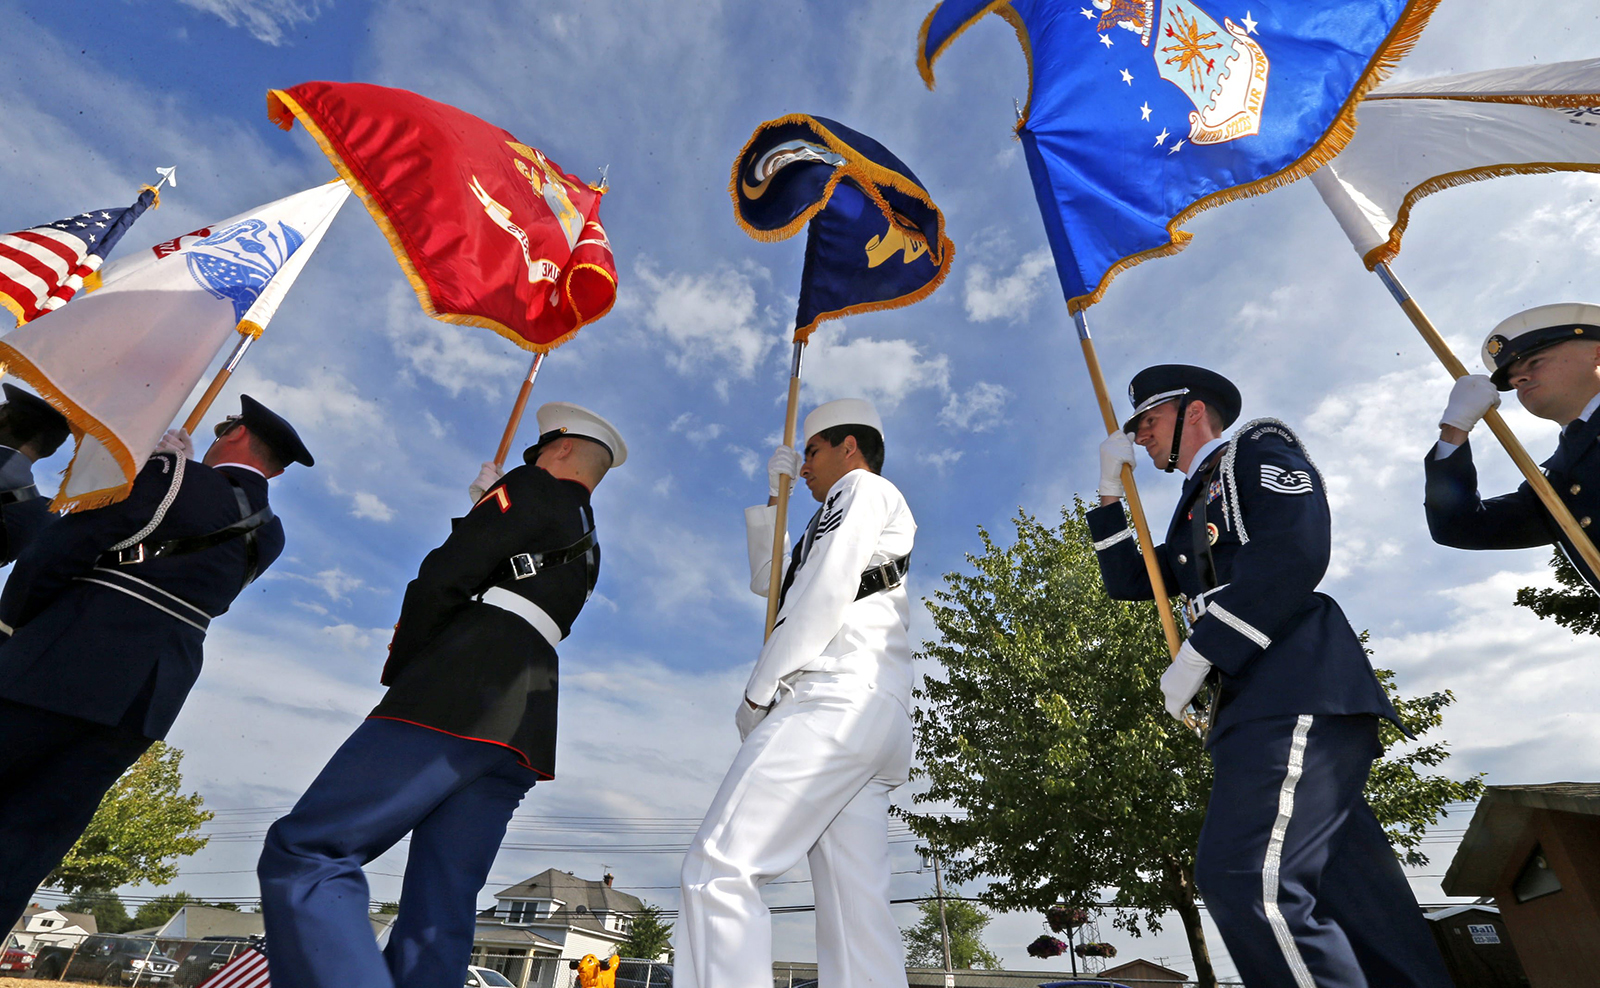 The honor guard representing the branches of the military bring in the colors.  The Town of Tonawanda honored the resident veterans of the Town and the Village of Kenmore at a special ceremony at Kenney Field.  The Town Board paid tribute to the Resident Combat Veterans of the Afghanistan, Iraq and Gulf Wars on Sunday, July 3, 2016.  (Robert Kirkham/Buffalo News)